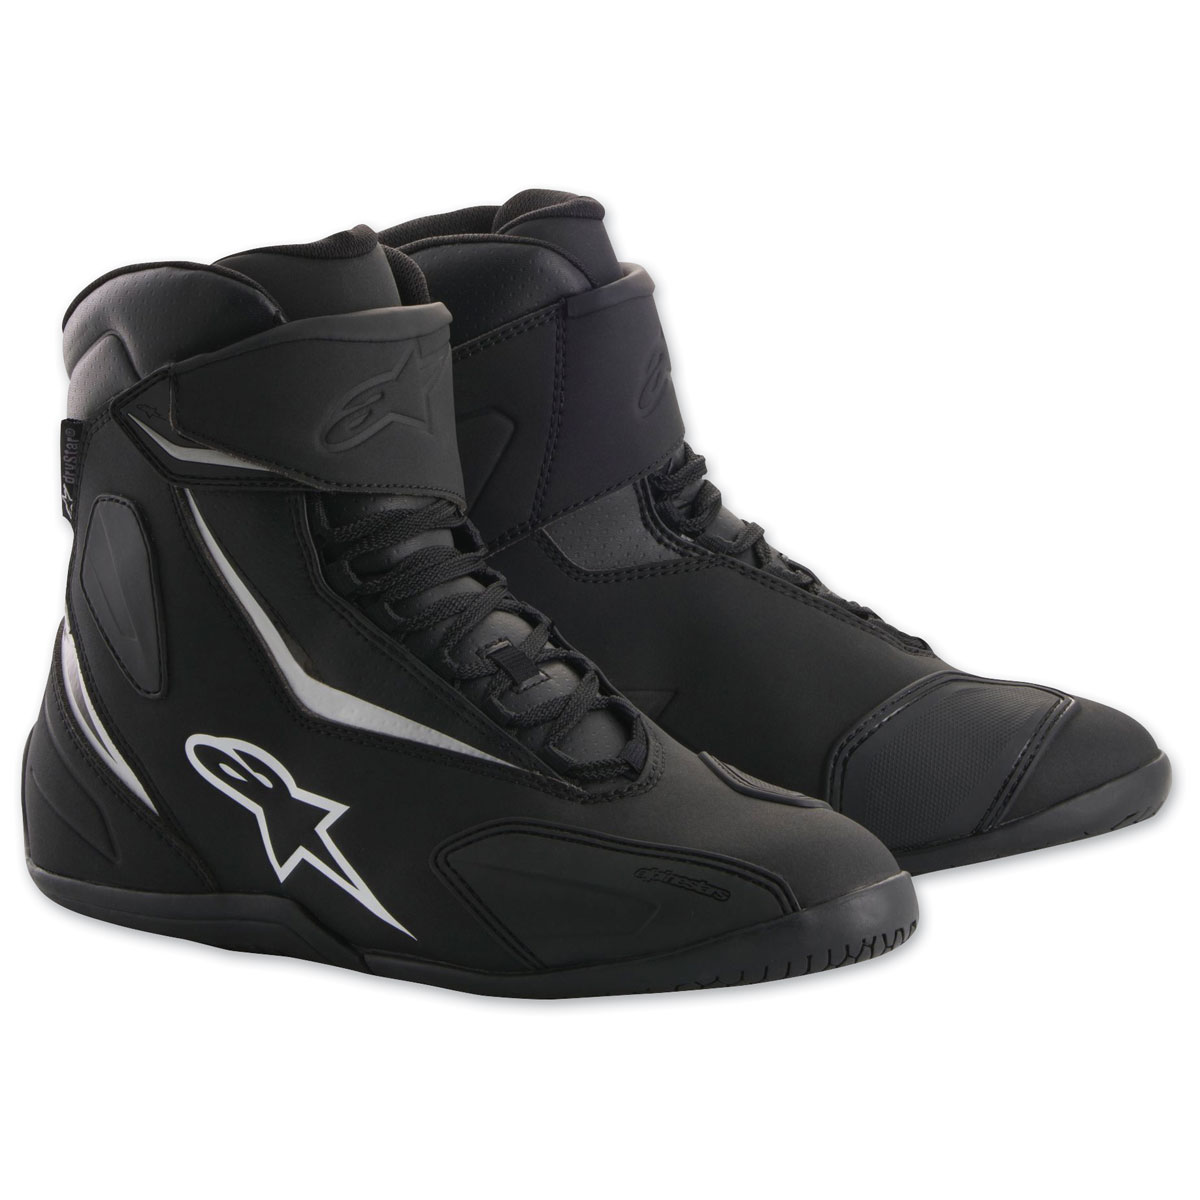 Alpinestars Men's Fastback-2 Drystar Black/Black Shoes